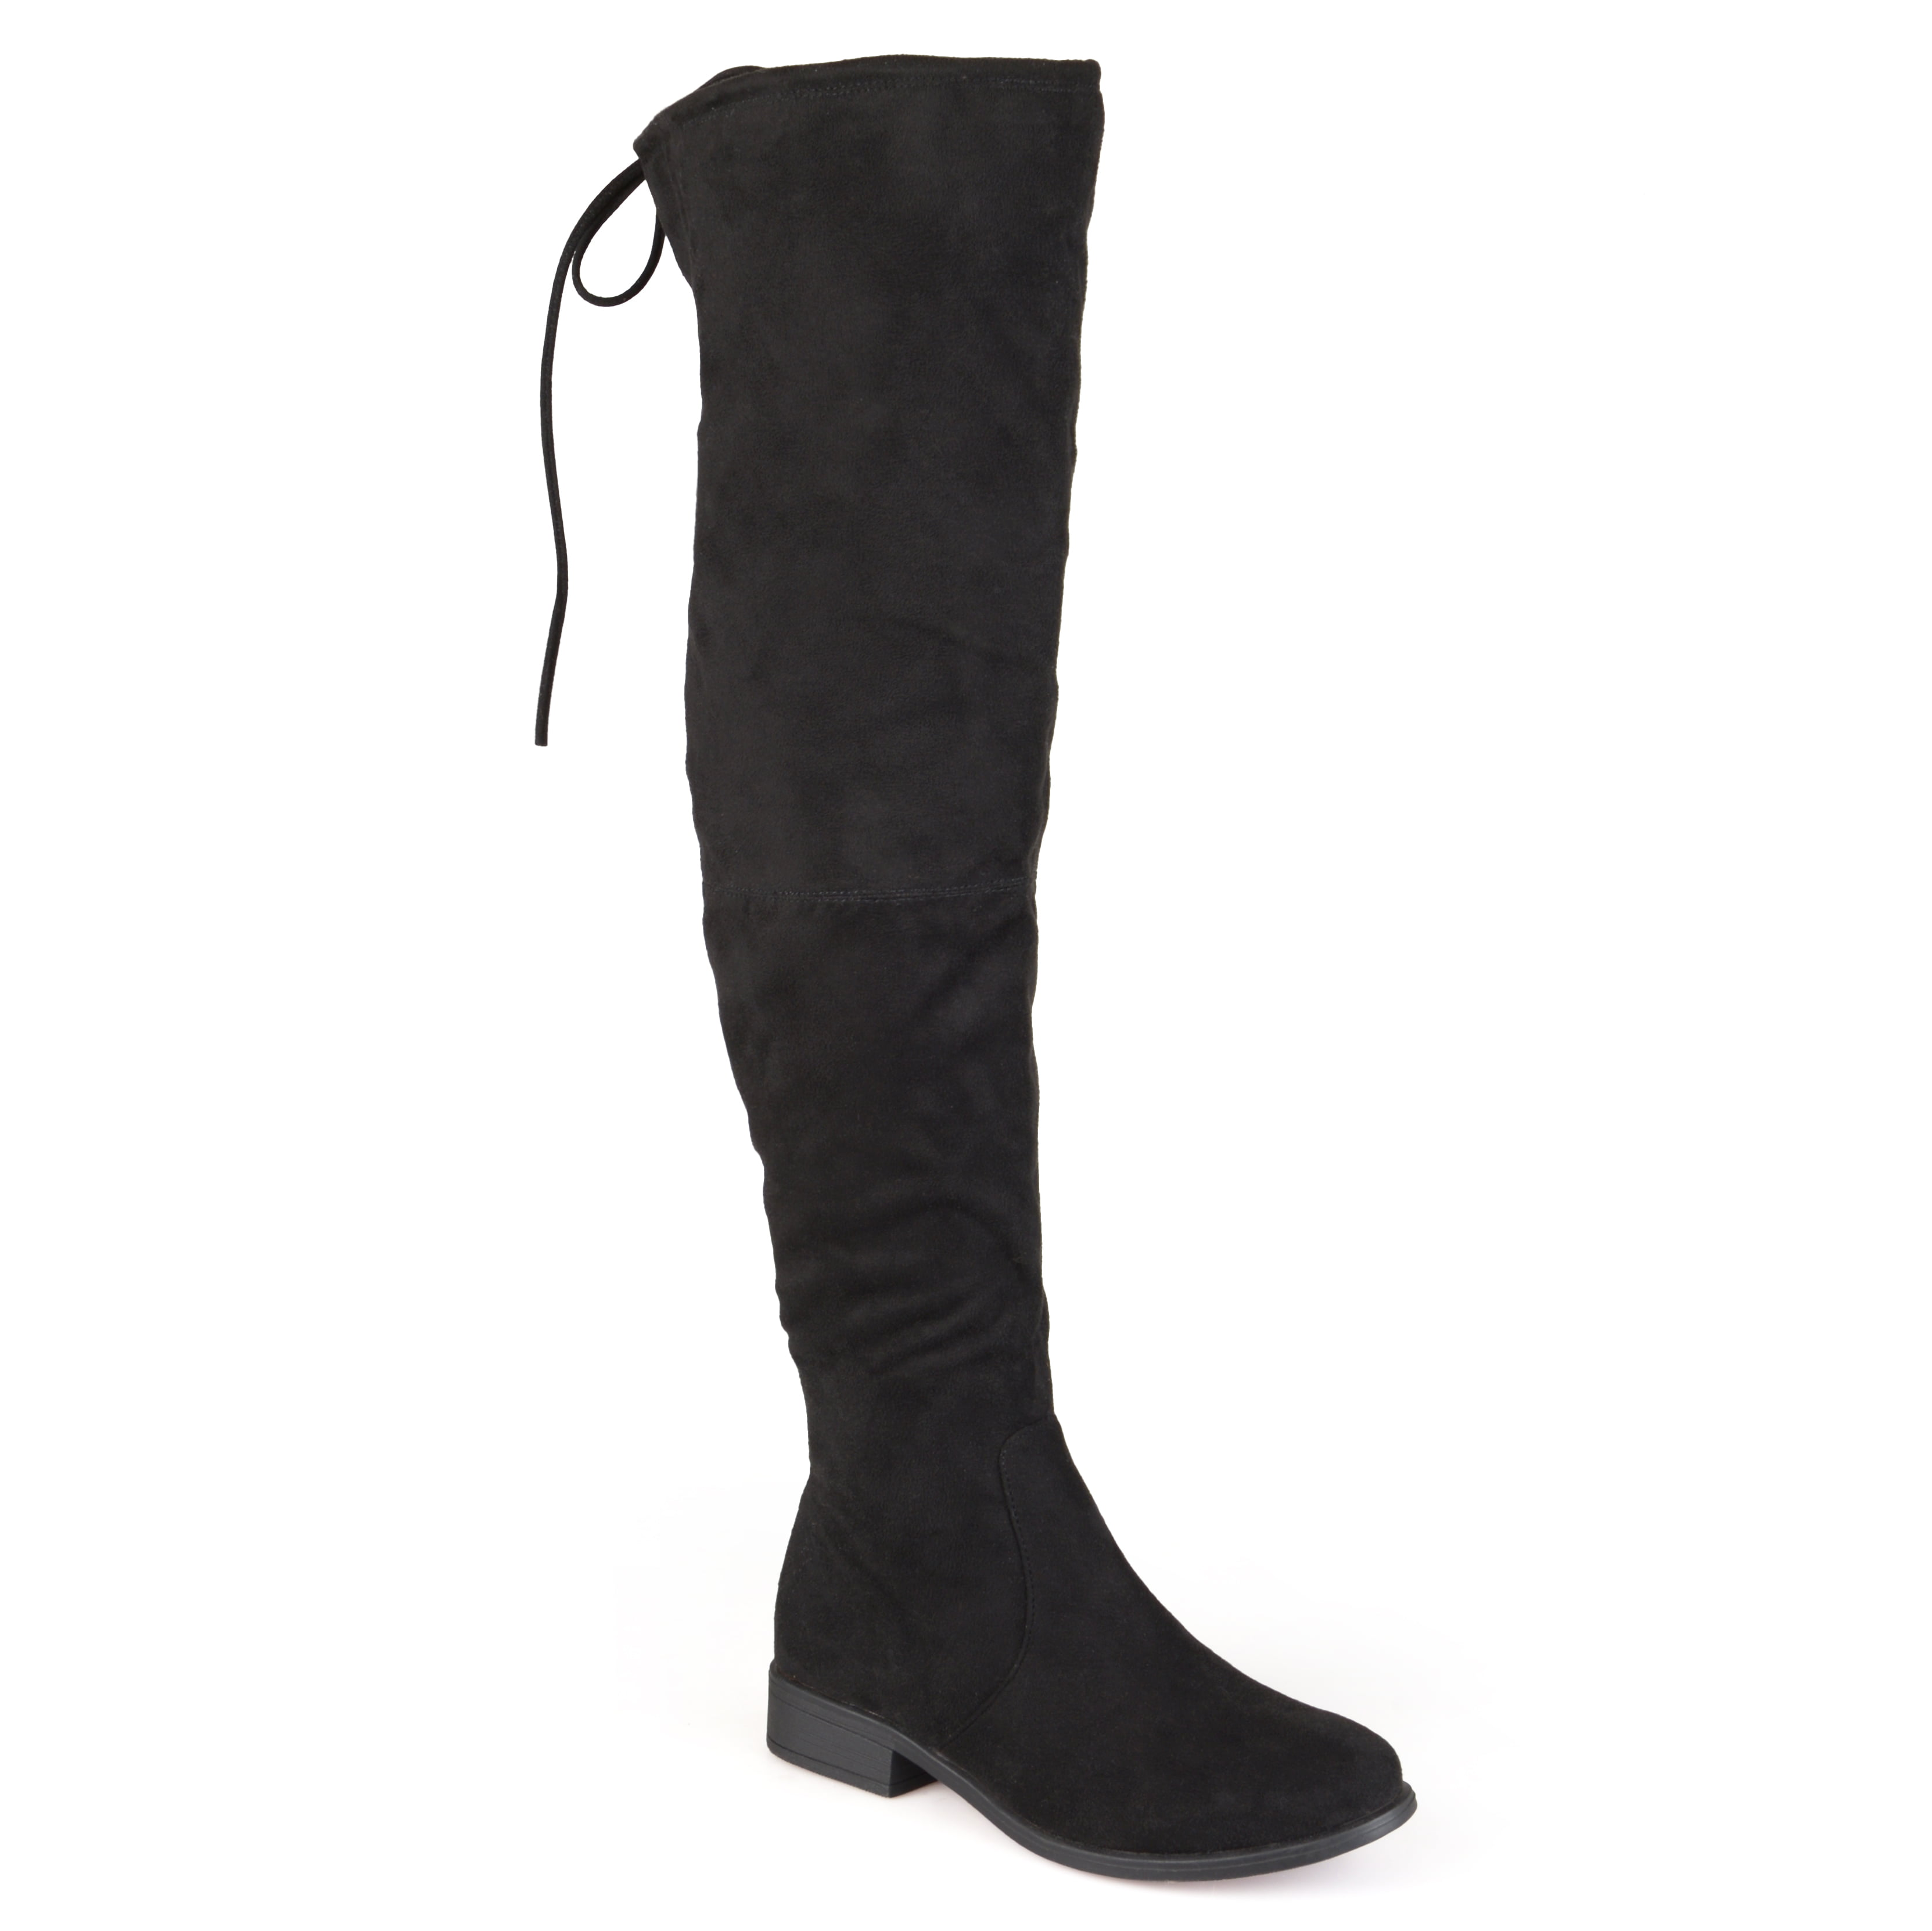 Women's Faux Suede Over-the-Knee Boots